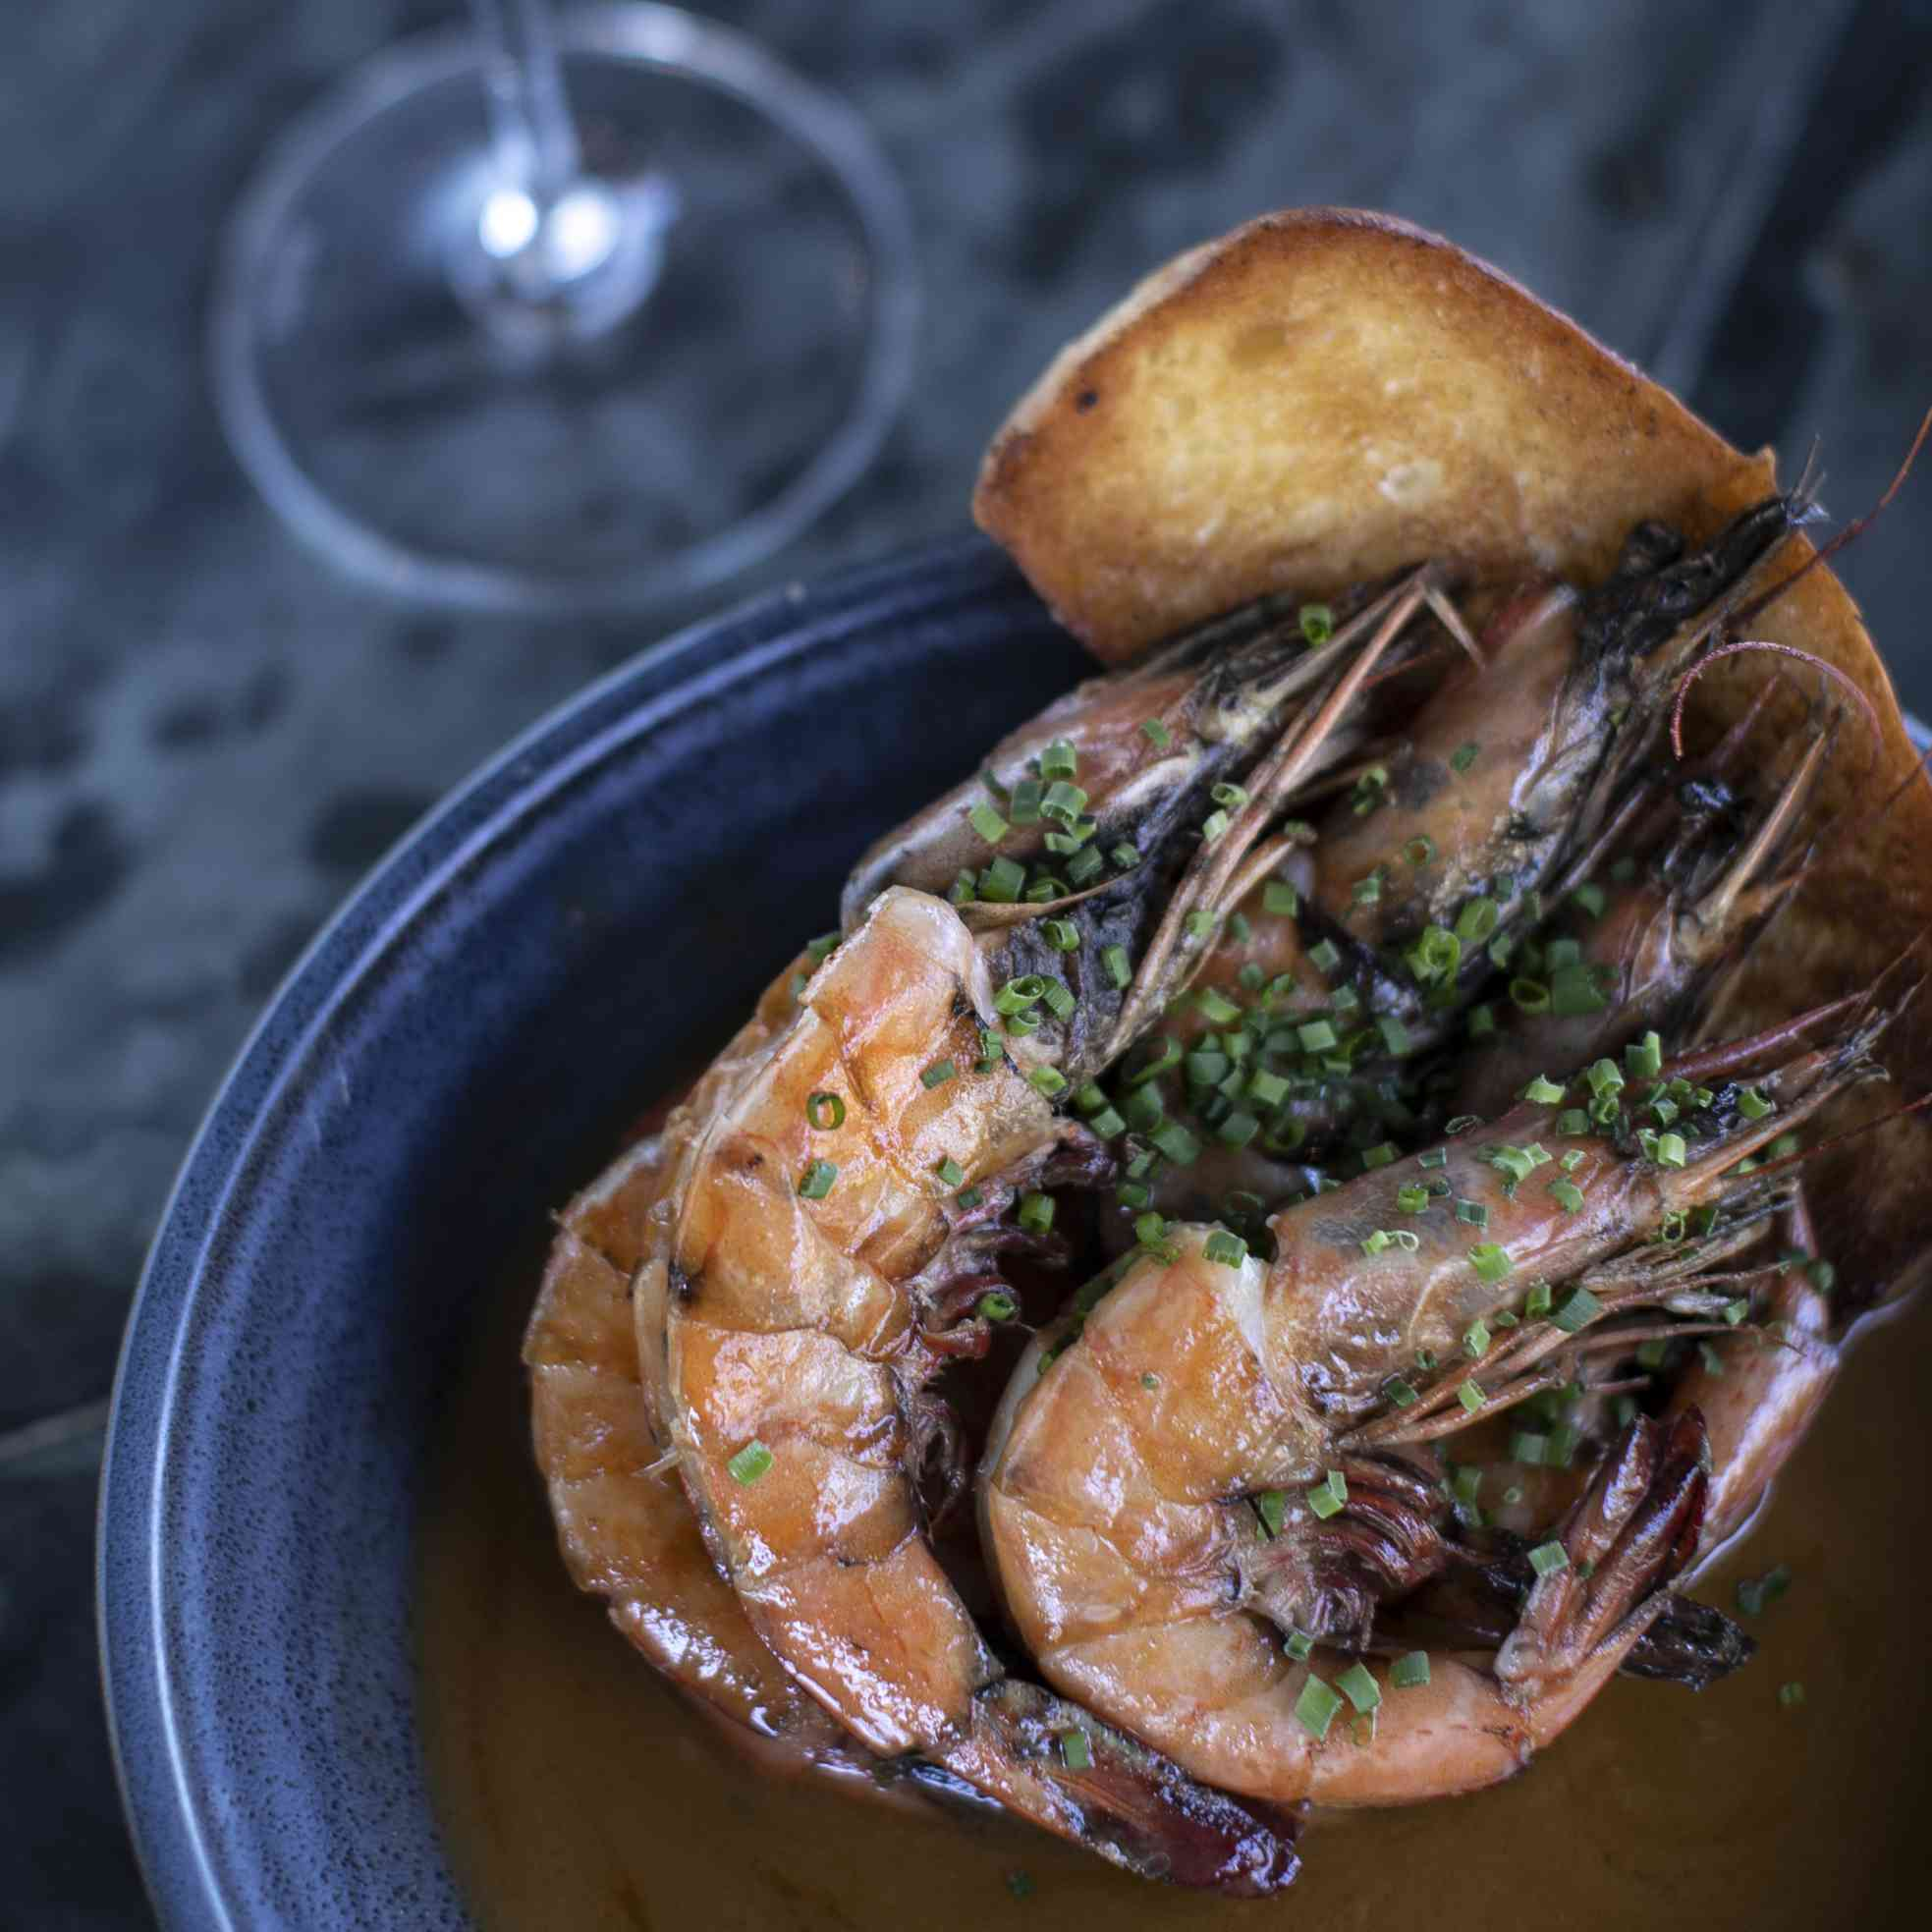 Barbecued white shrimp in a blue bow with a brown sauce